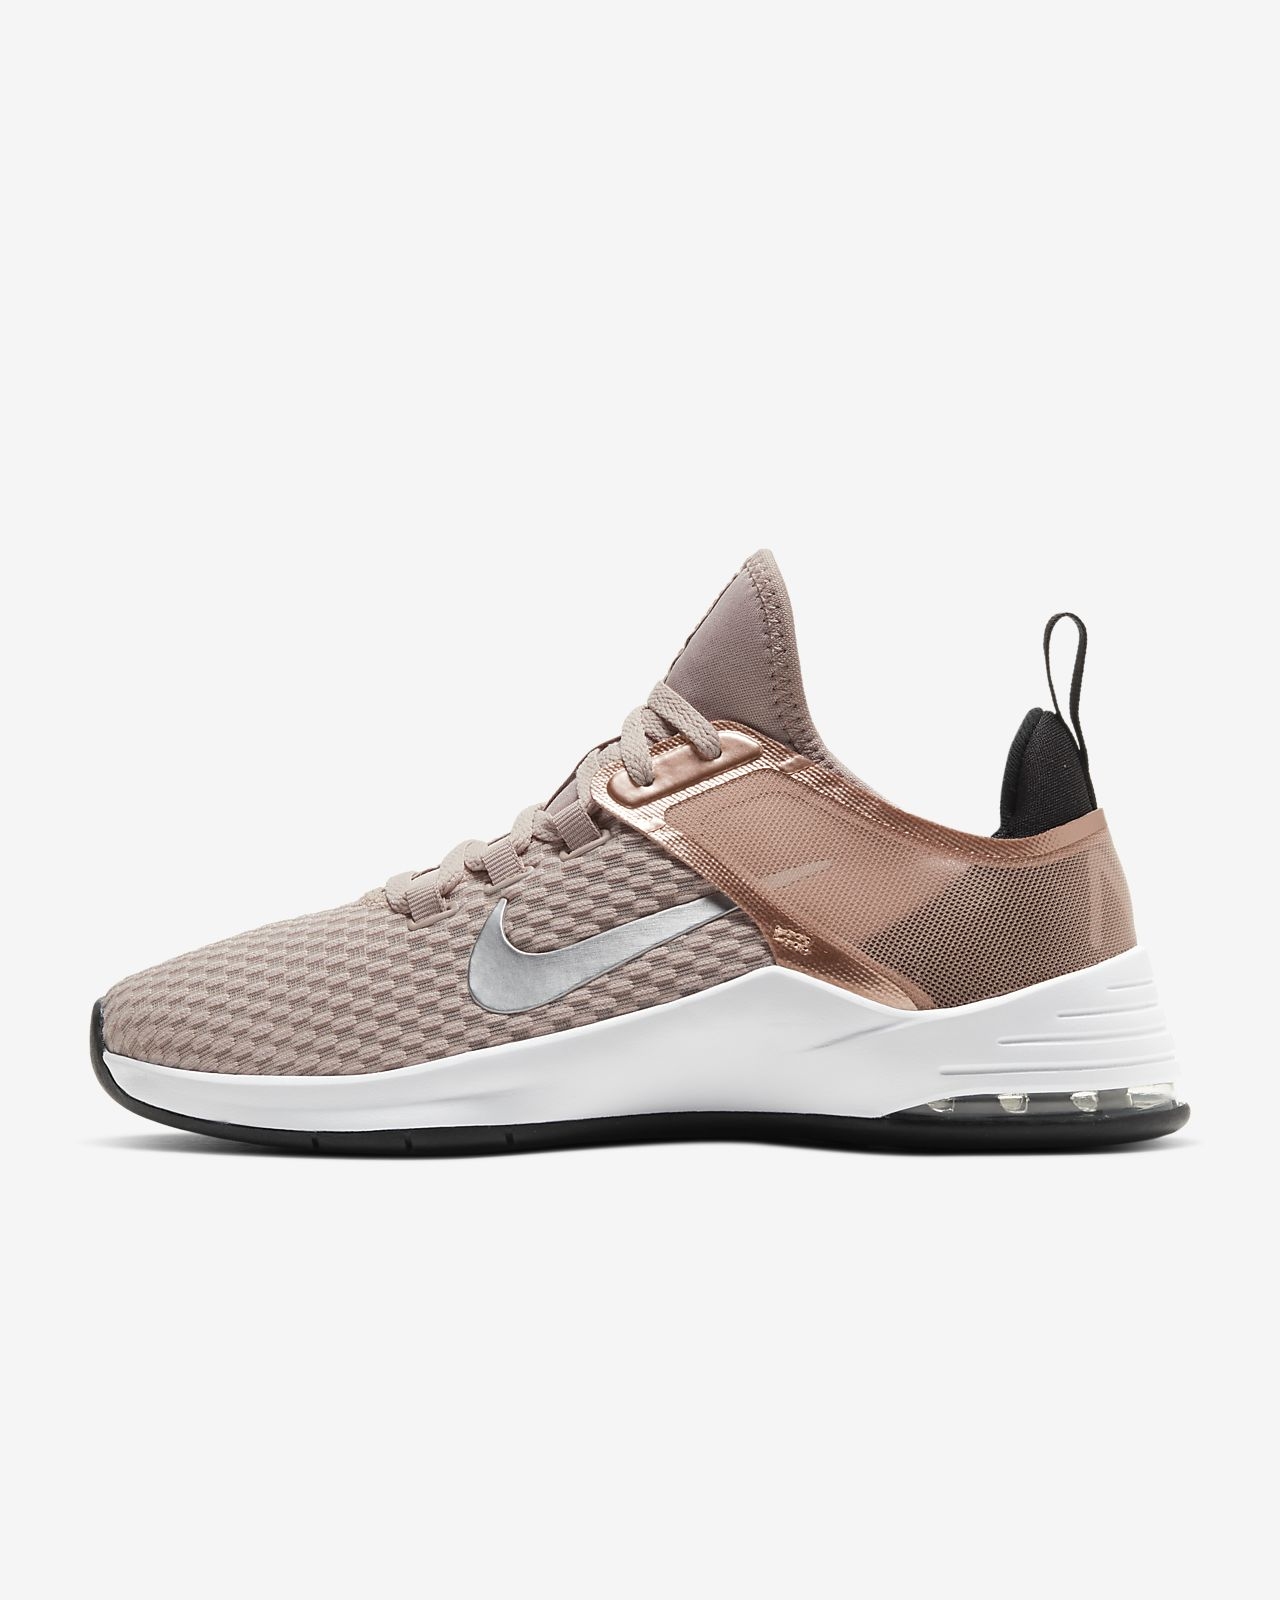 classic styles quality products performance sportswear Chaussure de training Nike Air Max Bella TR 2 pour Femme. Nike CA